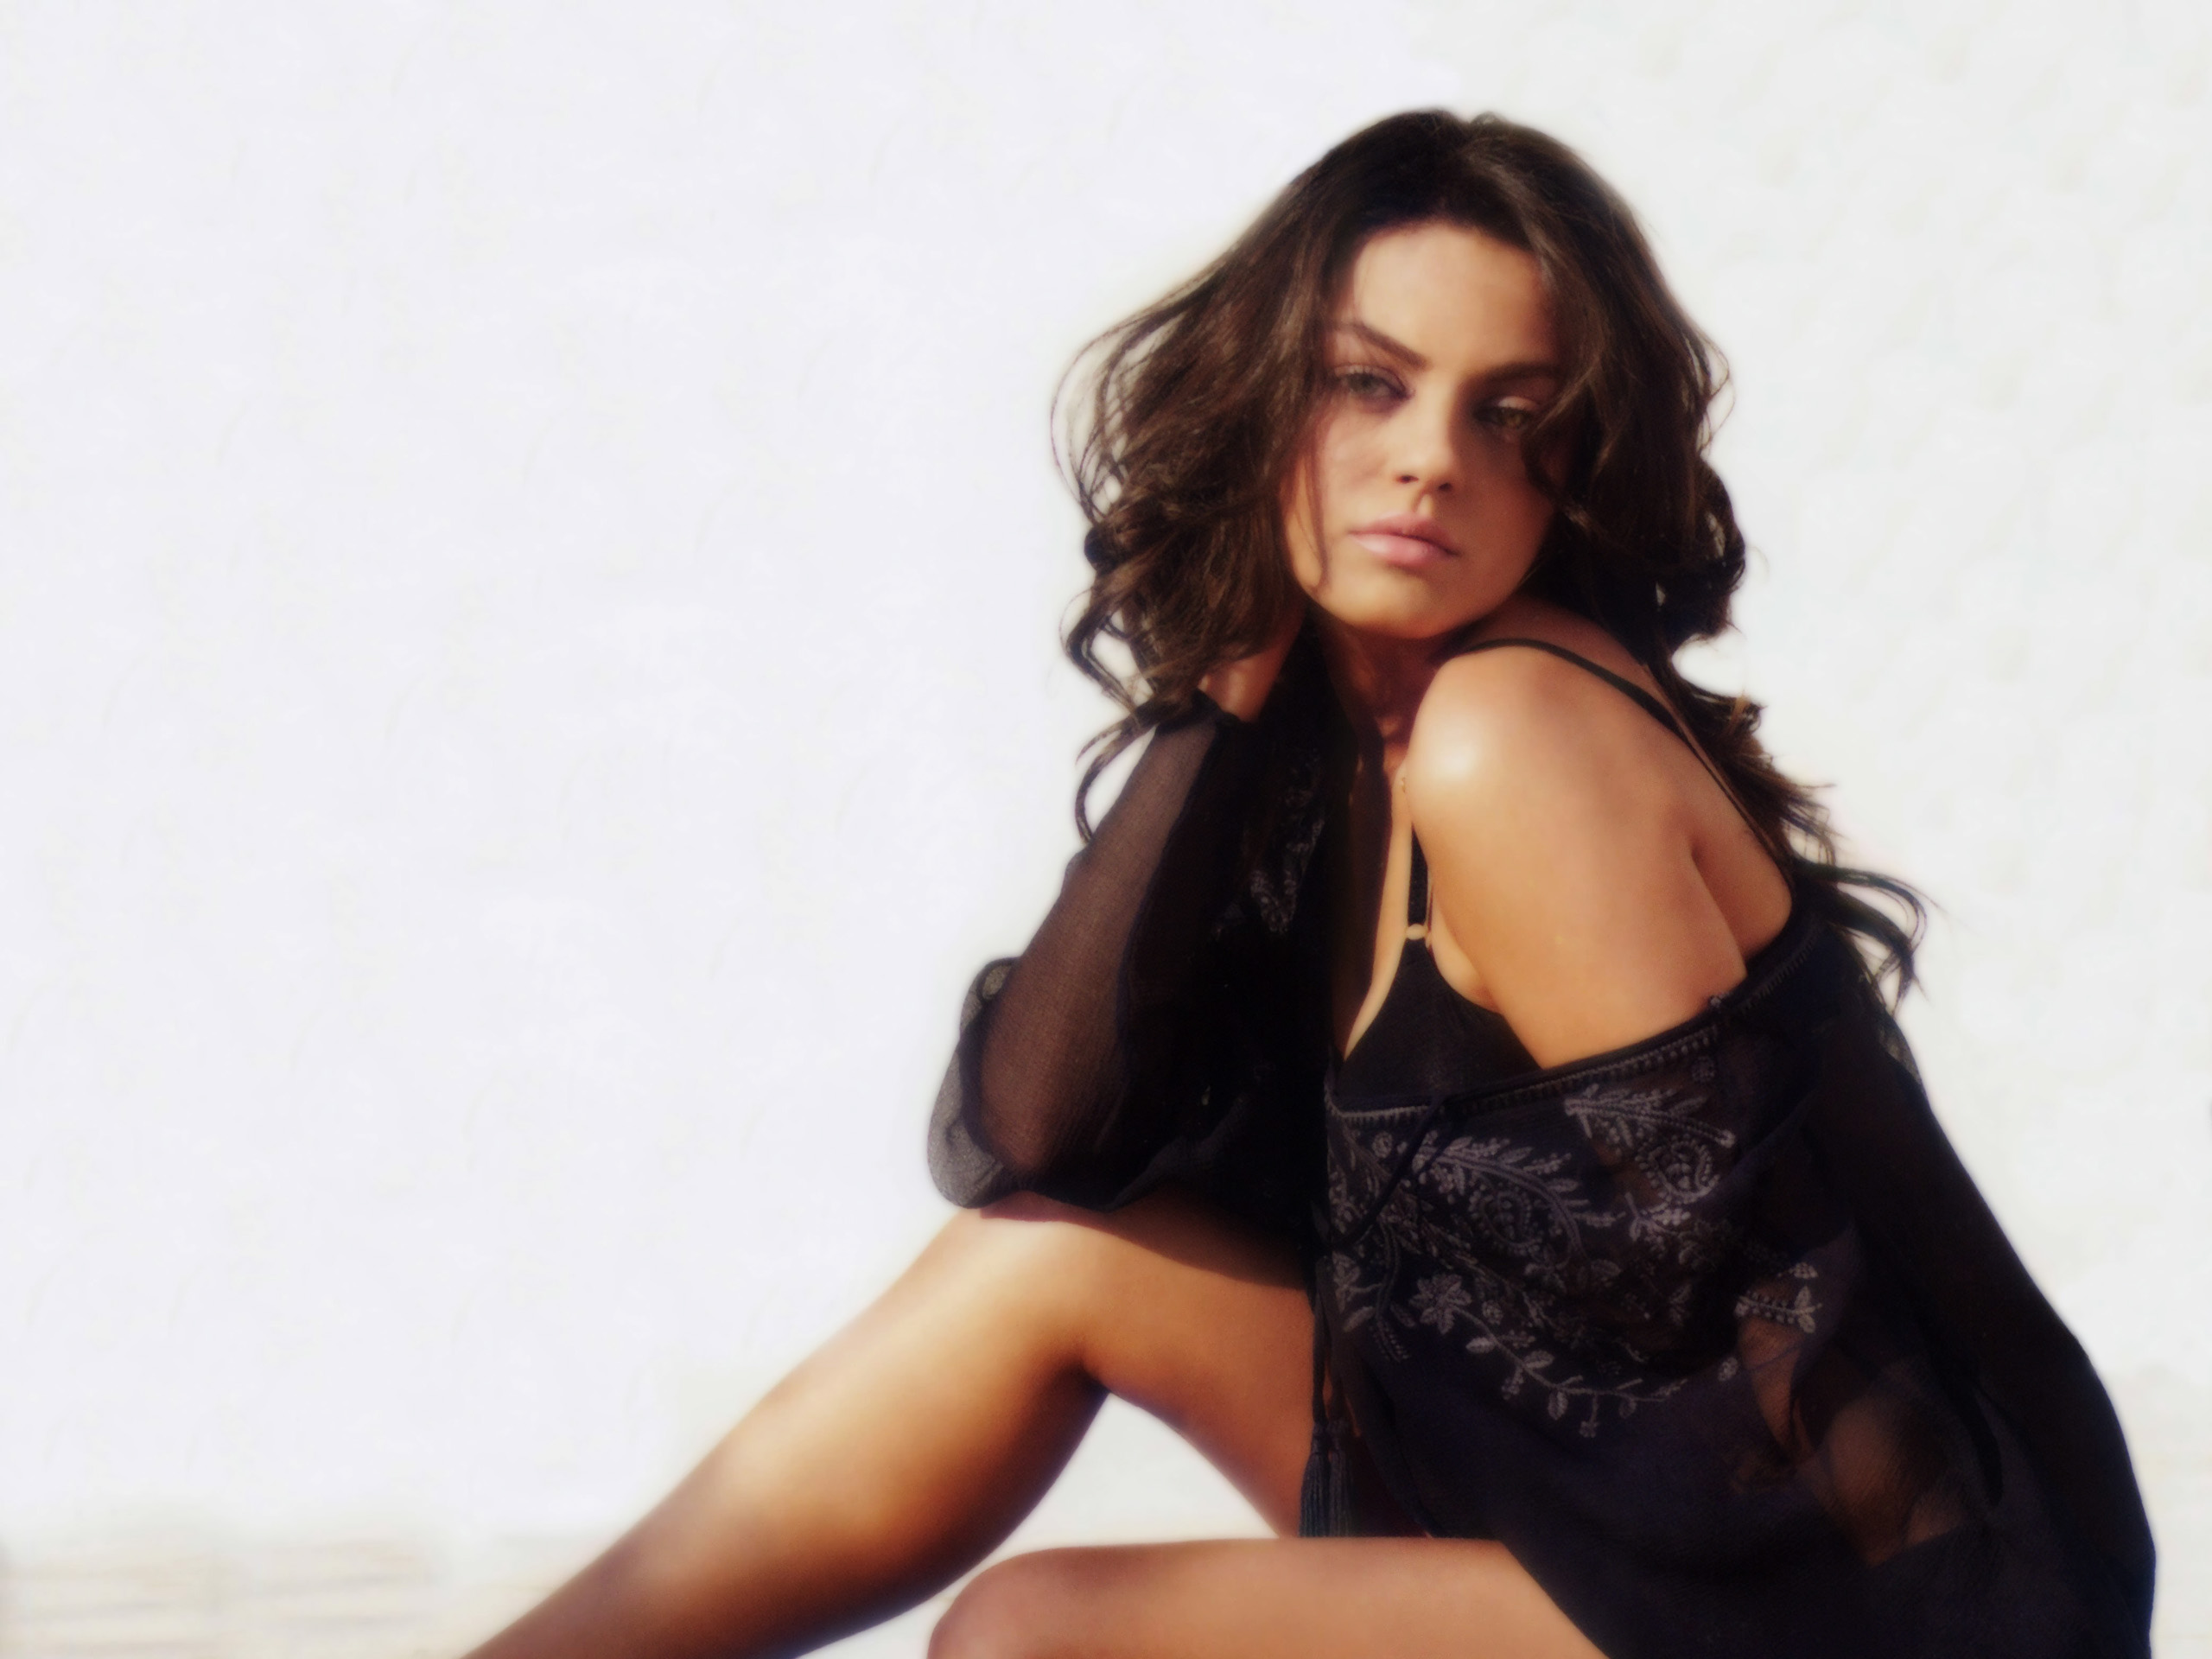 mila kunis | free desktop wallpapers for widescreen, hd and mobile